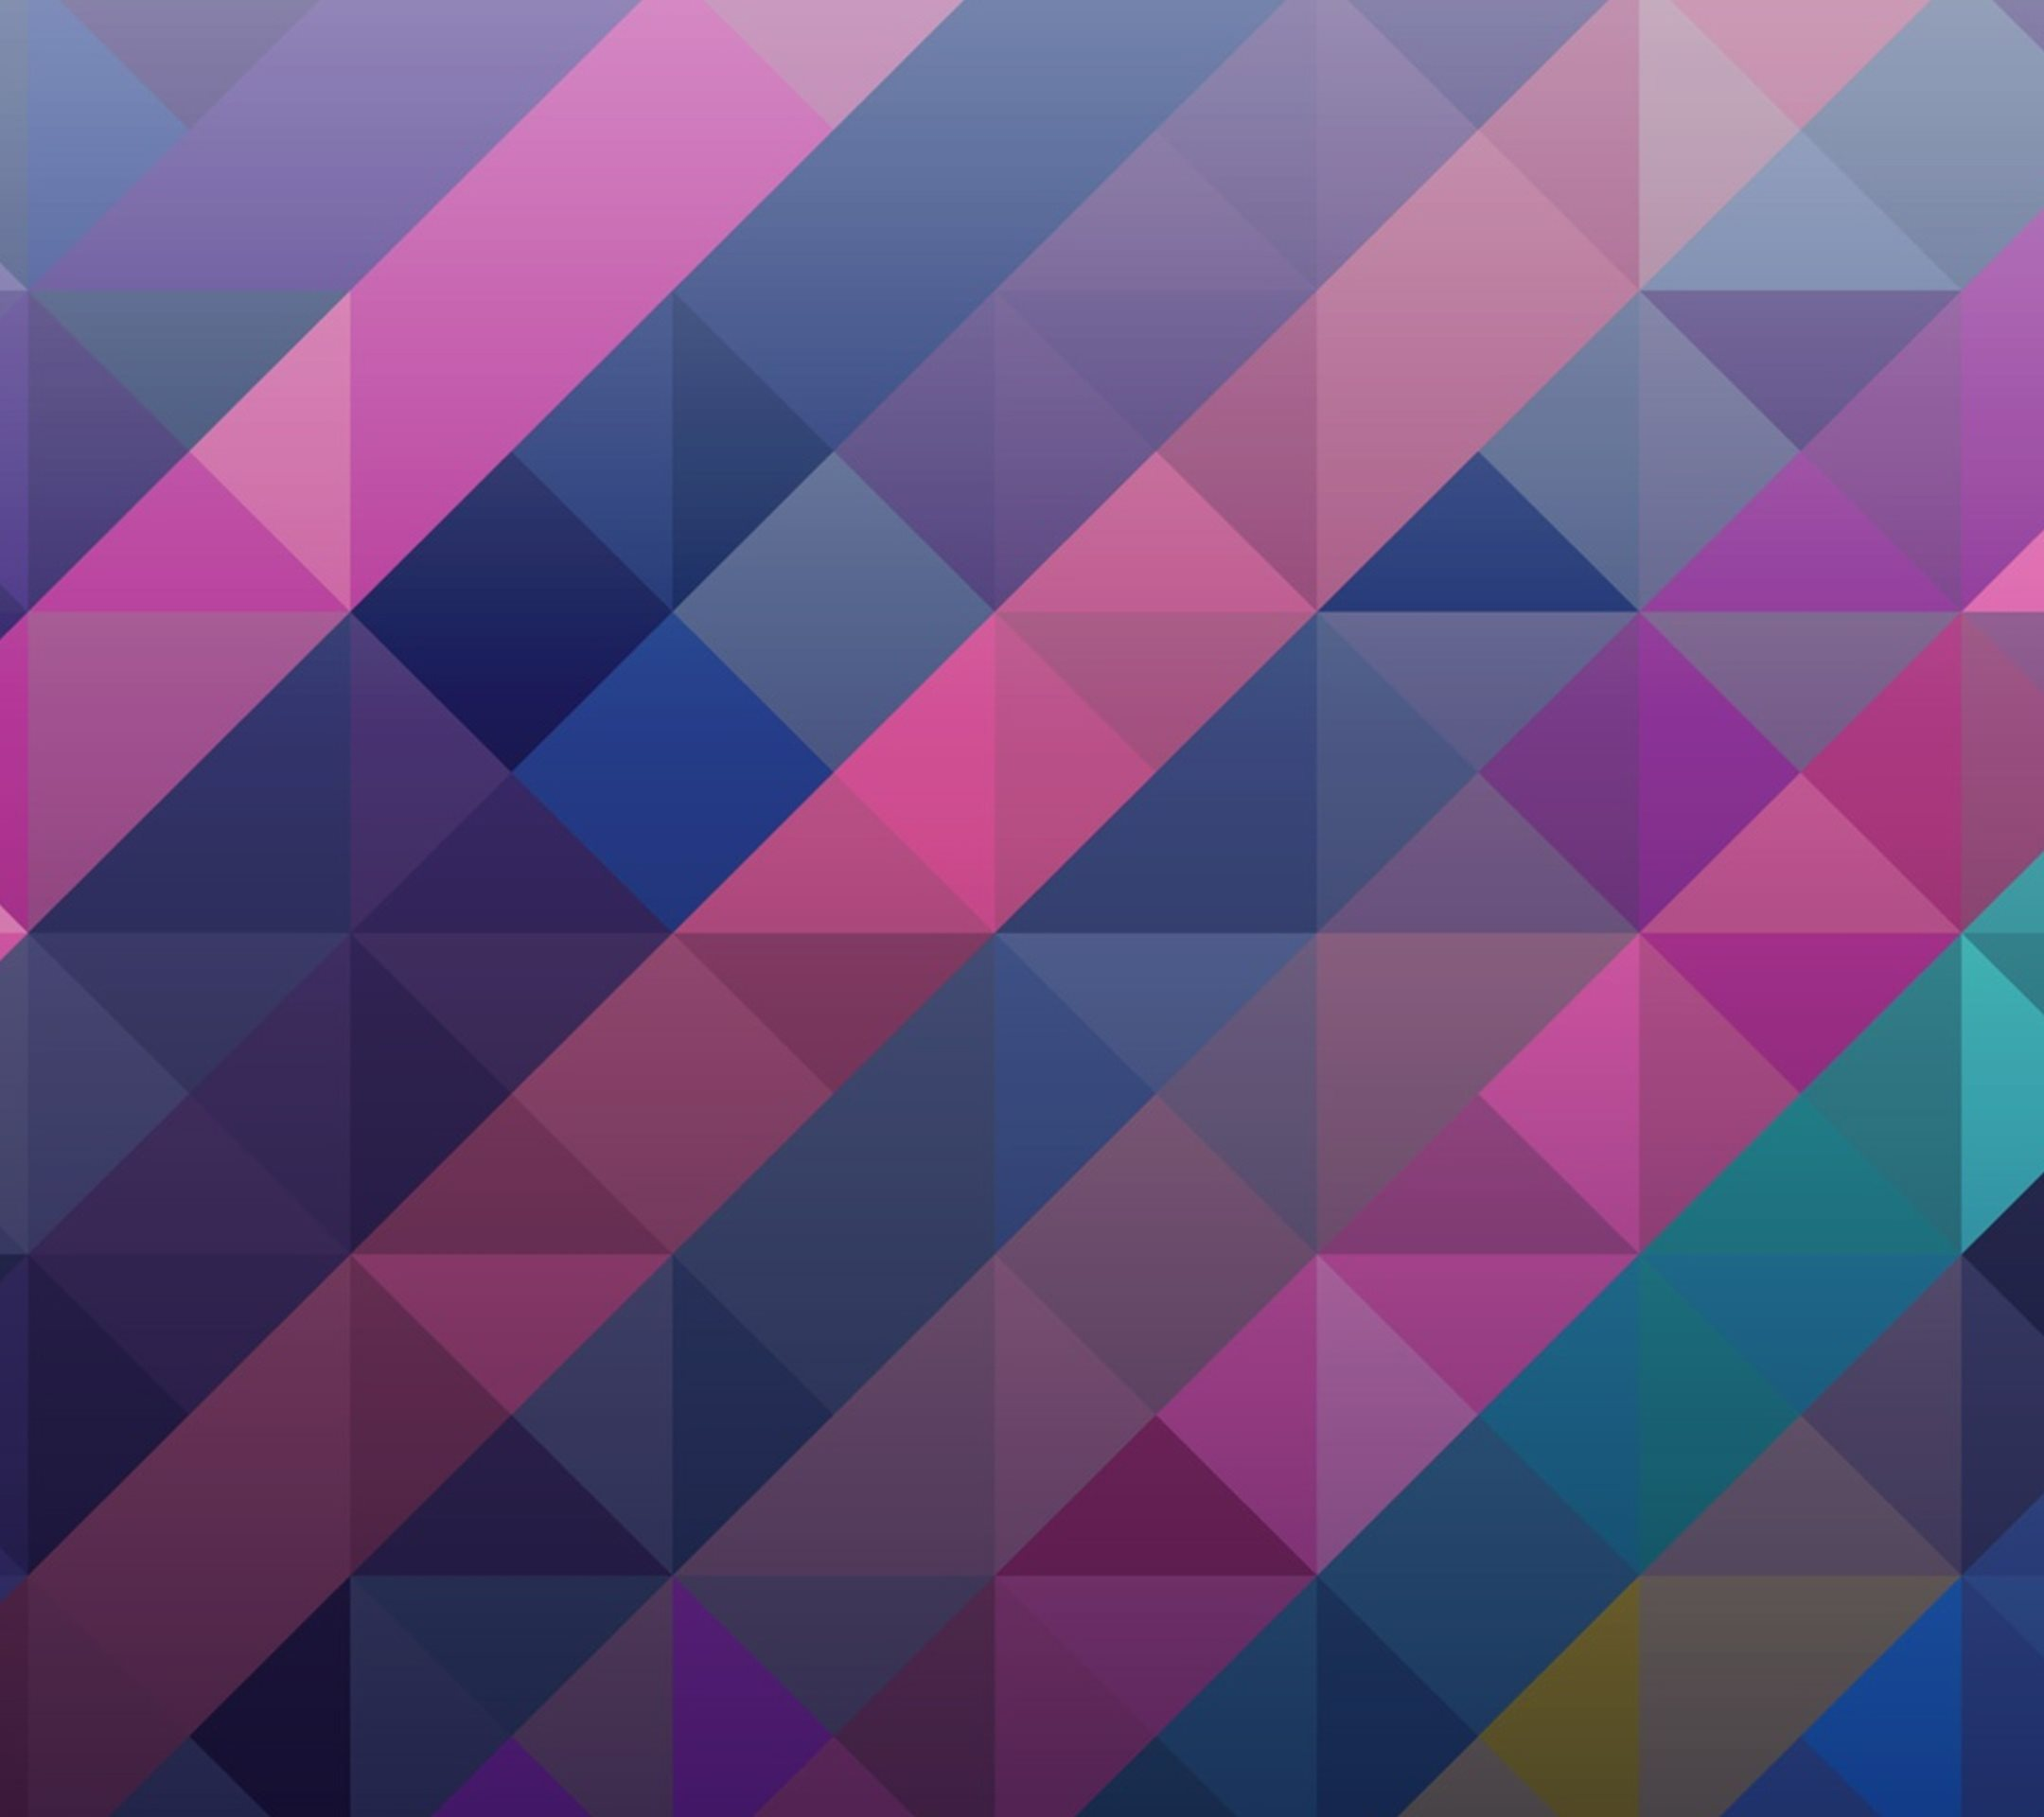 2160x1920 Wallpapers for Android Phones